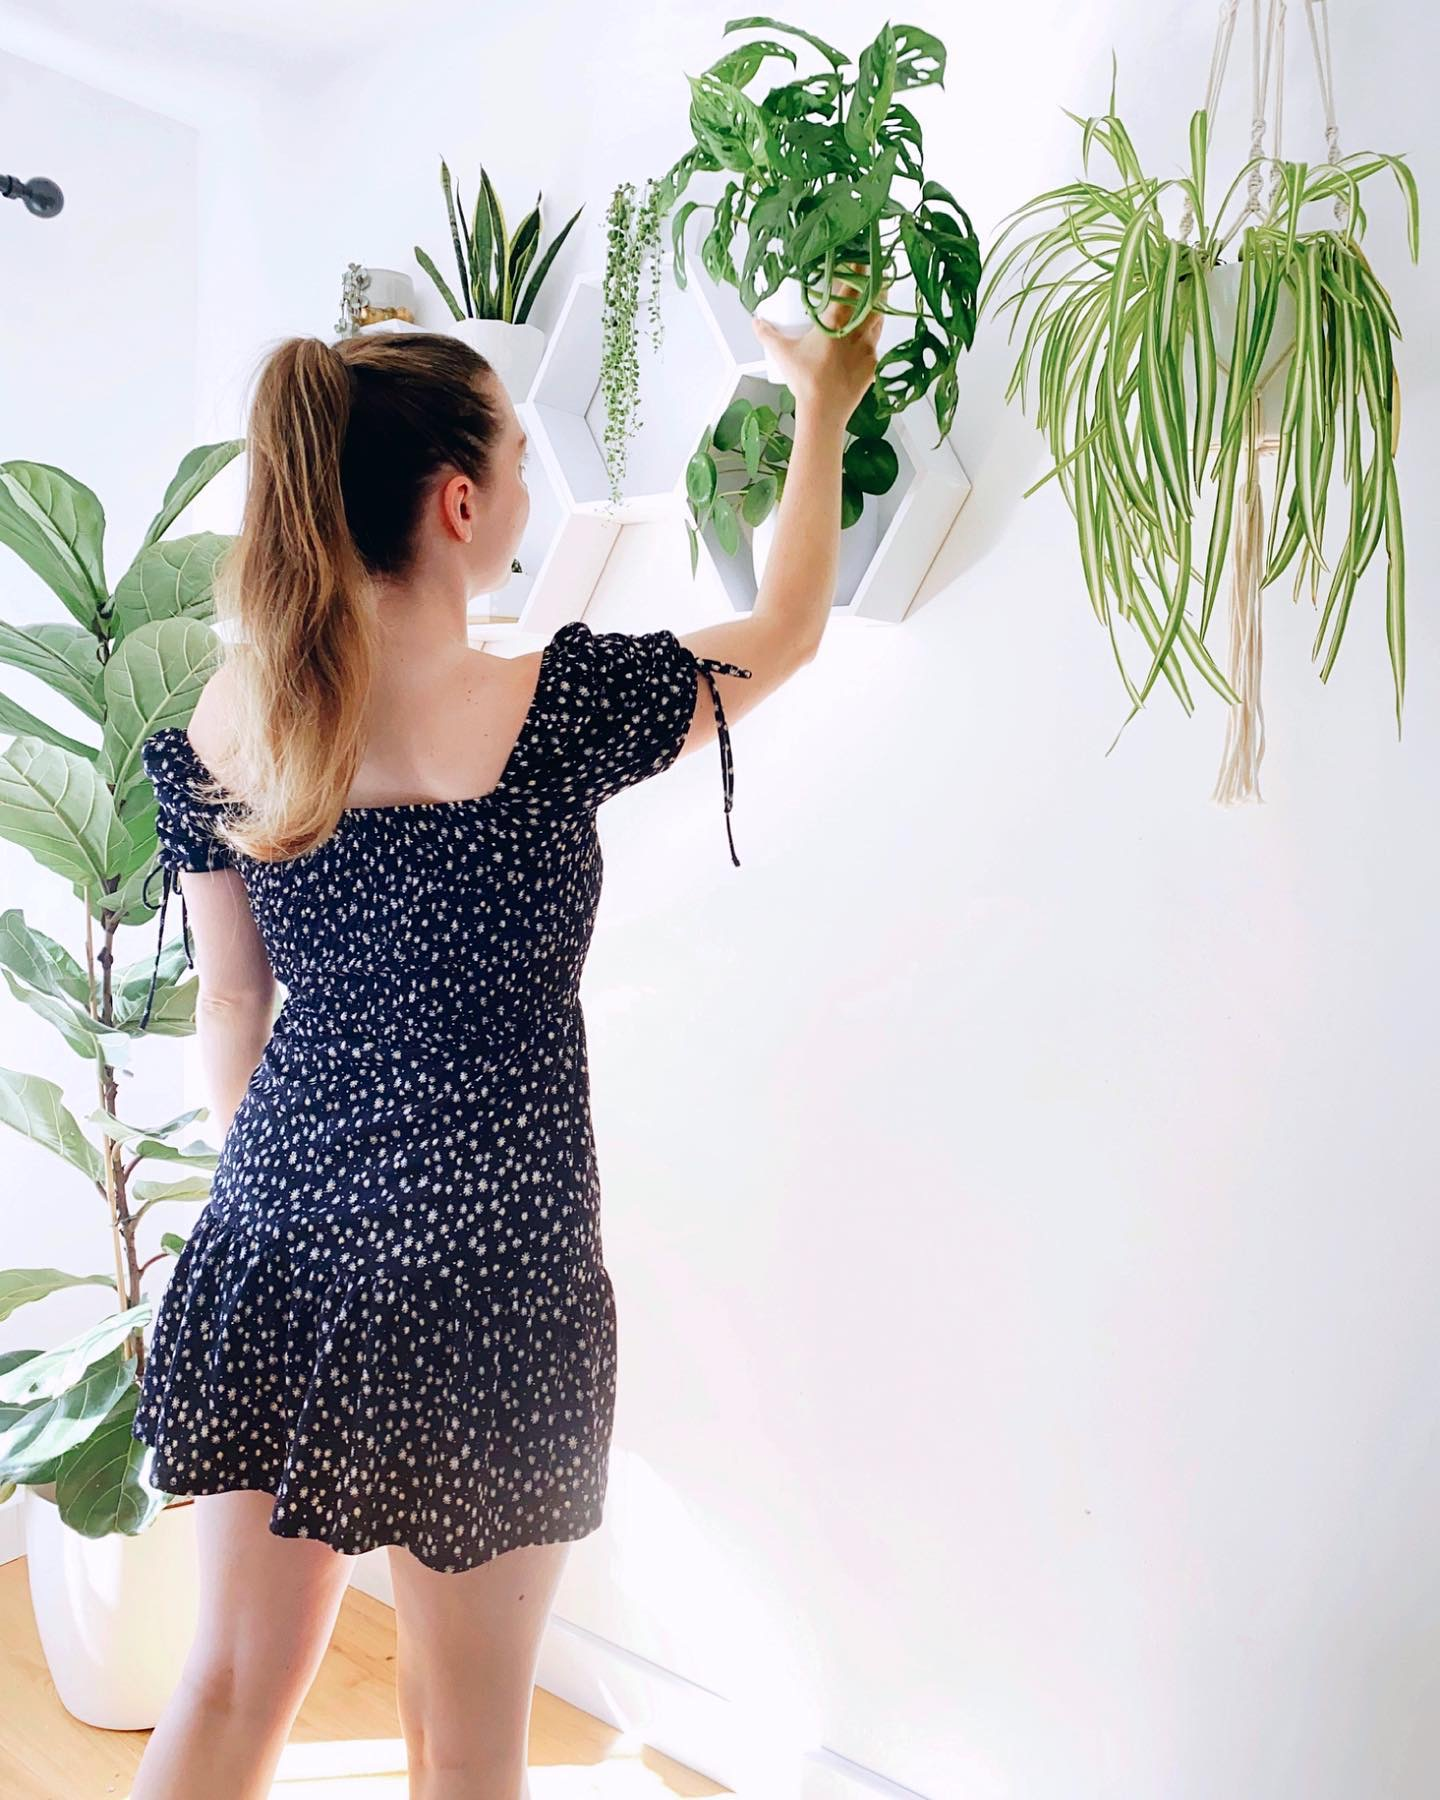 Houseplant Tour and Plant Tips